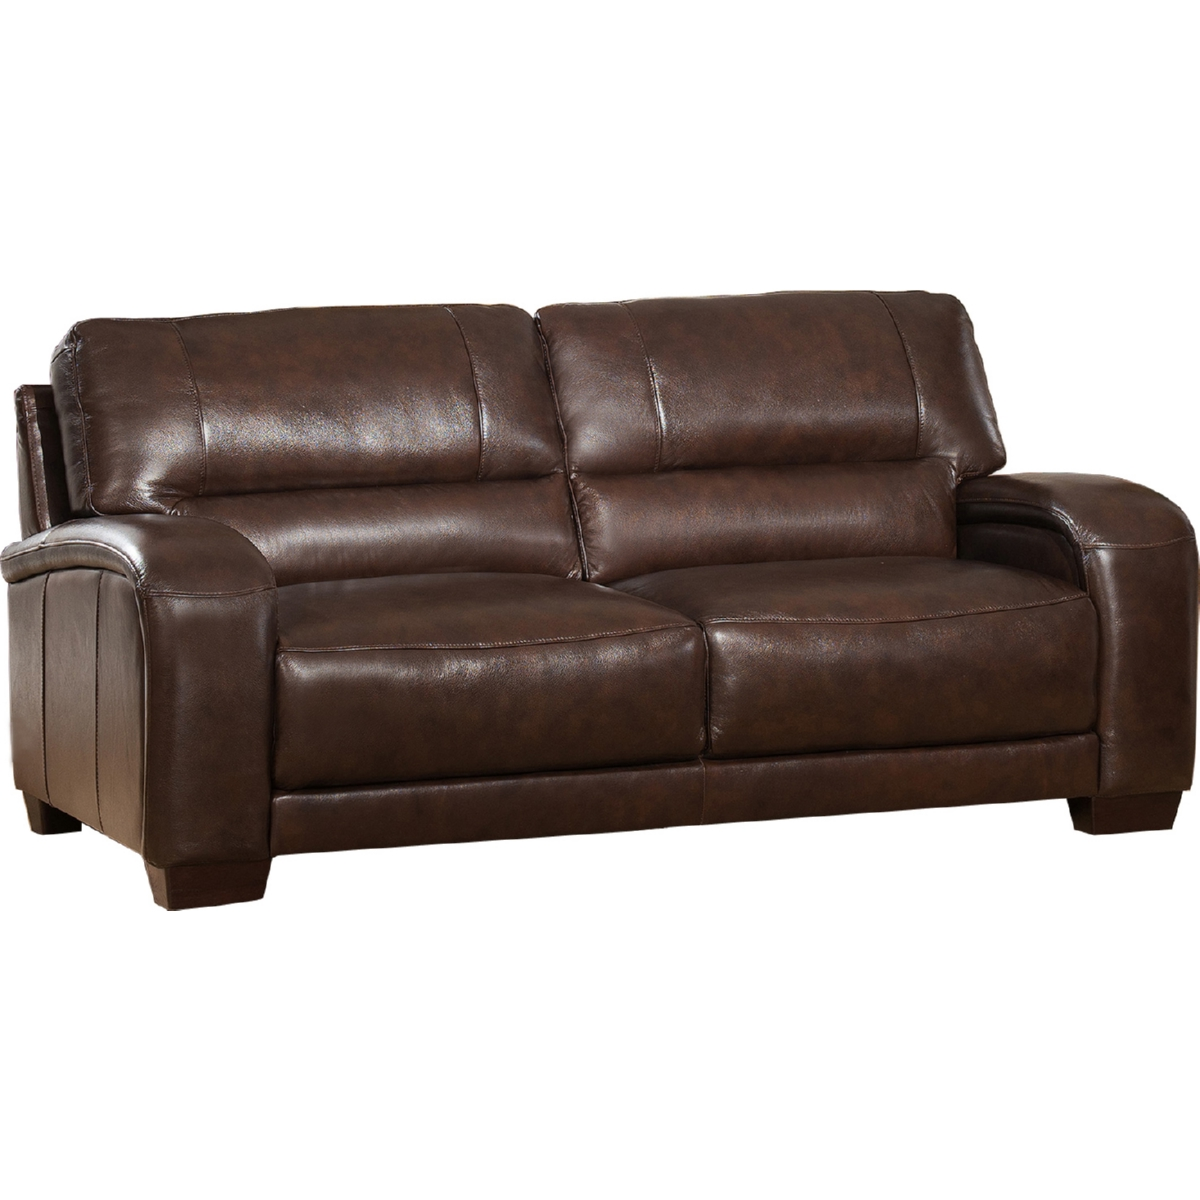 getting rid of a sofa sofas for sales how to get ink stains on leather baci living